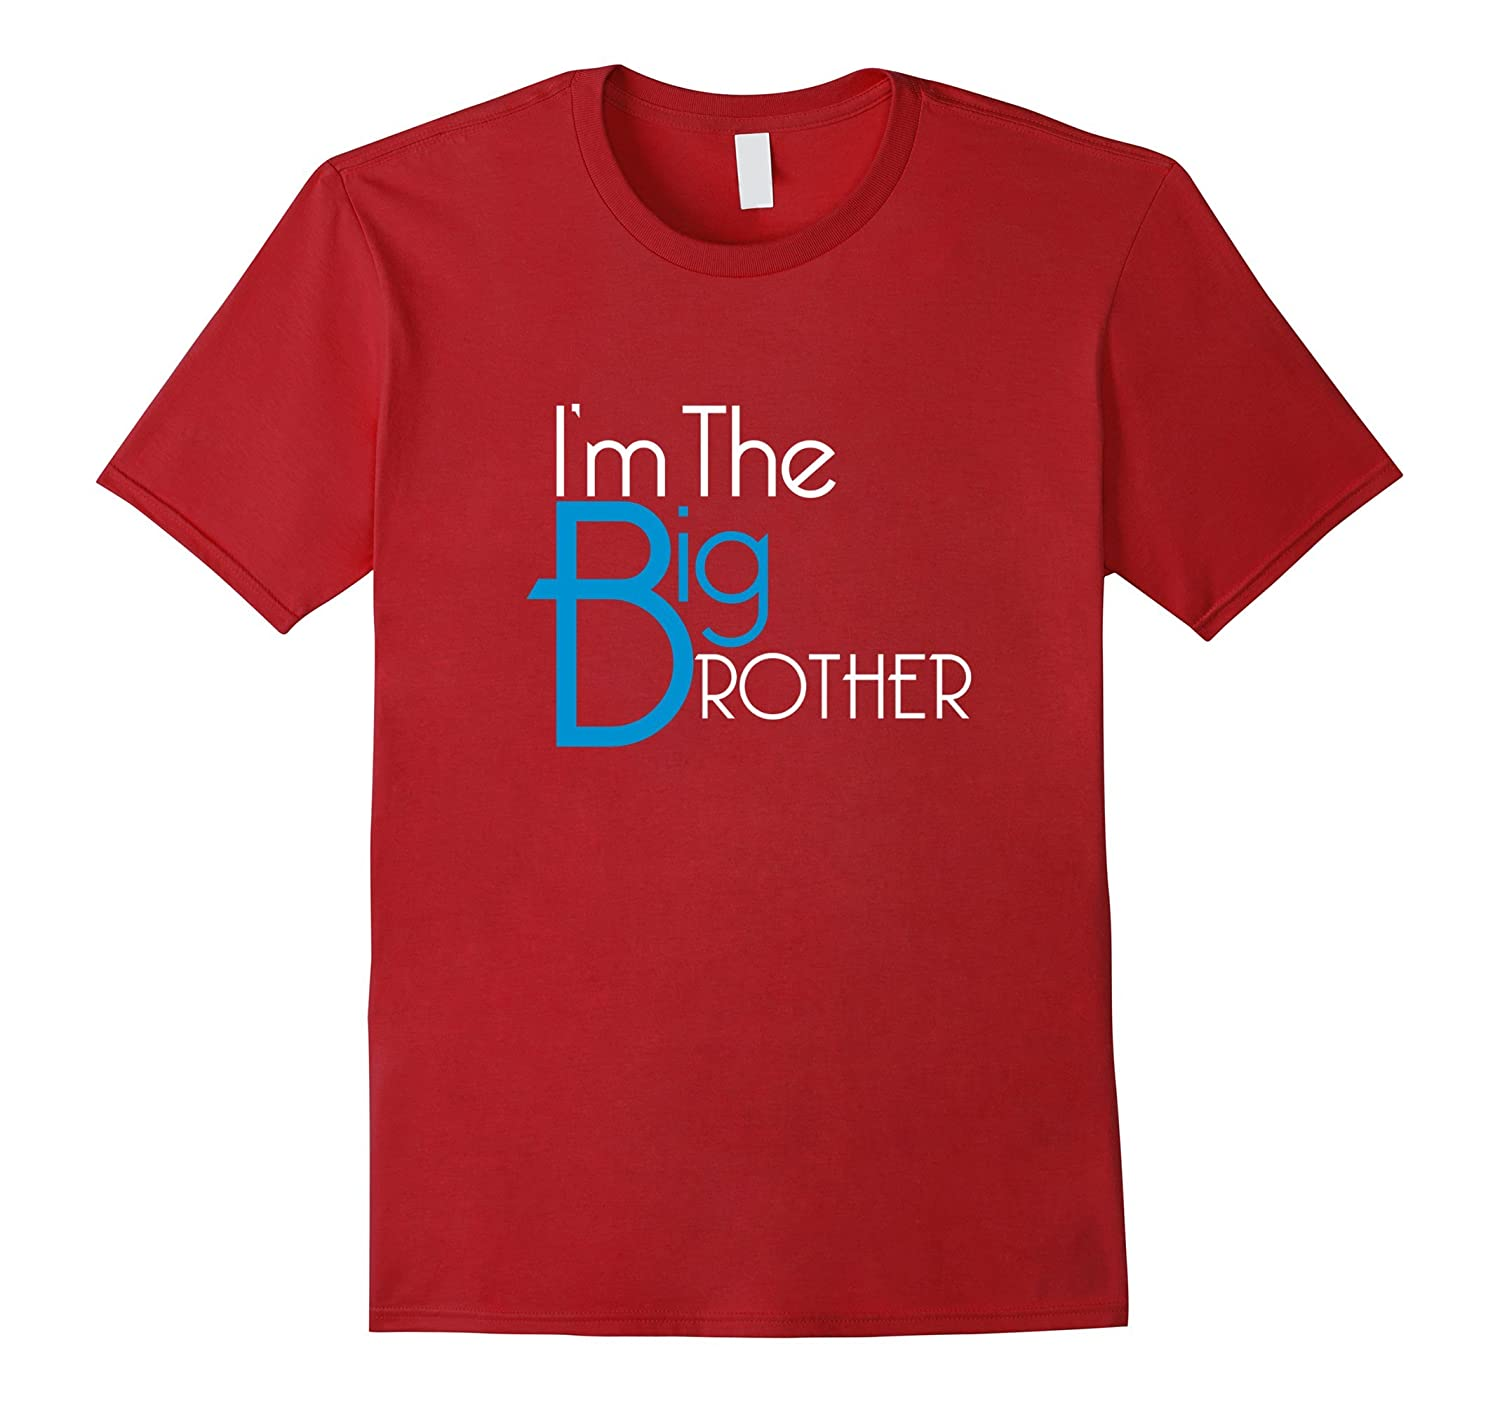 I'm The Big Brother Family T-shirt